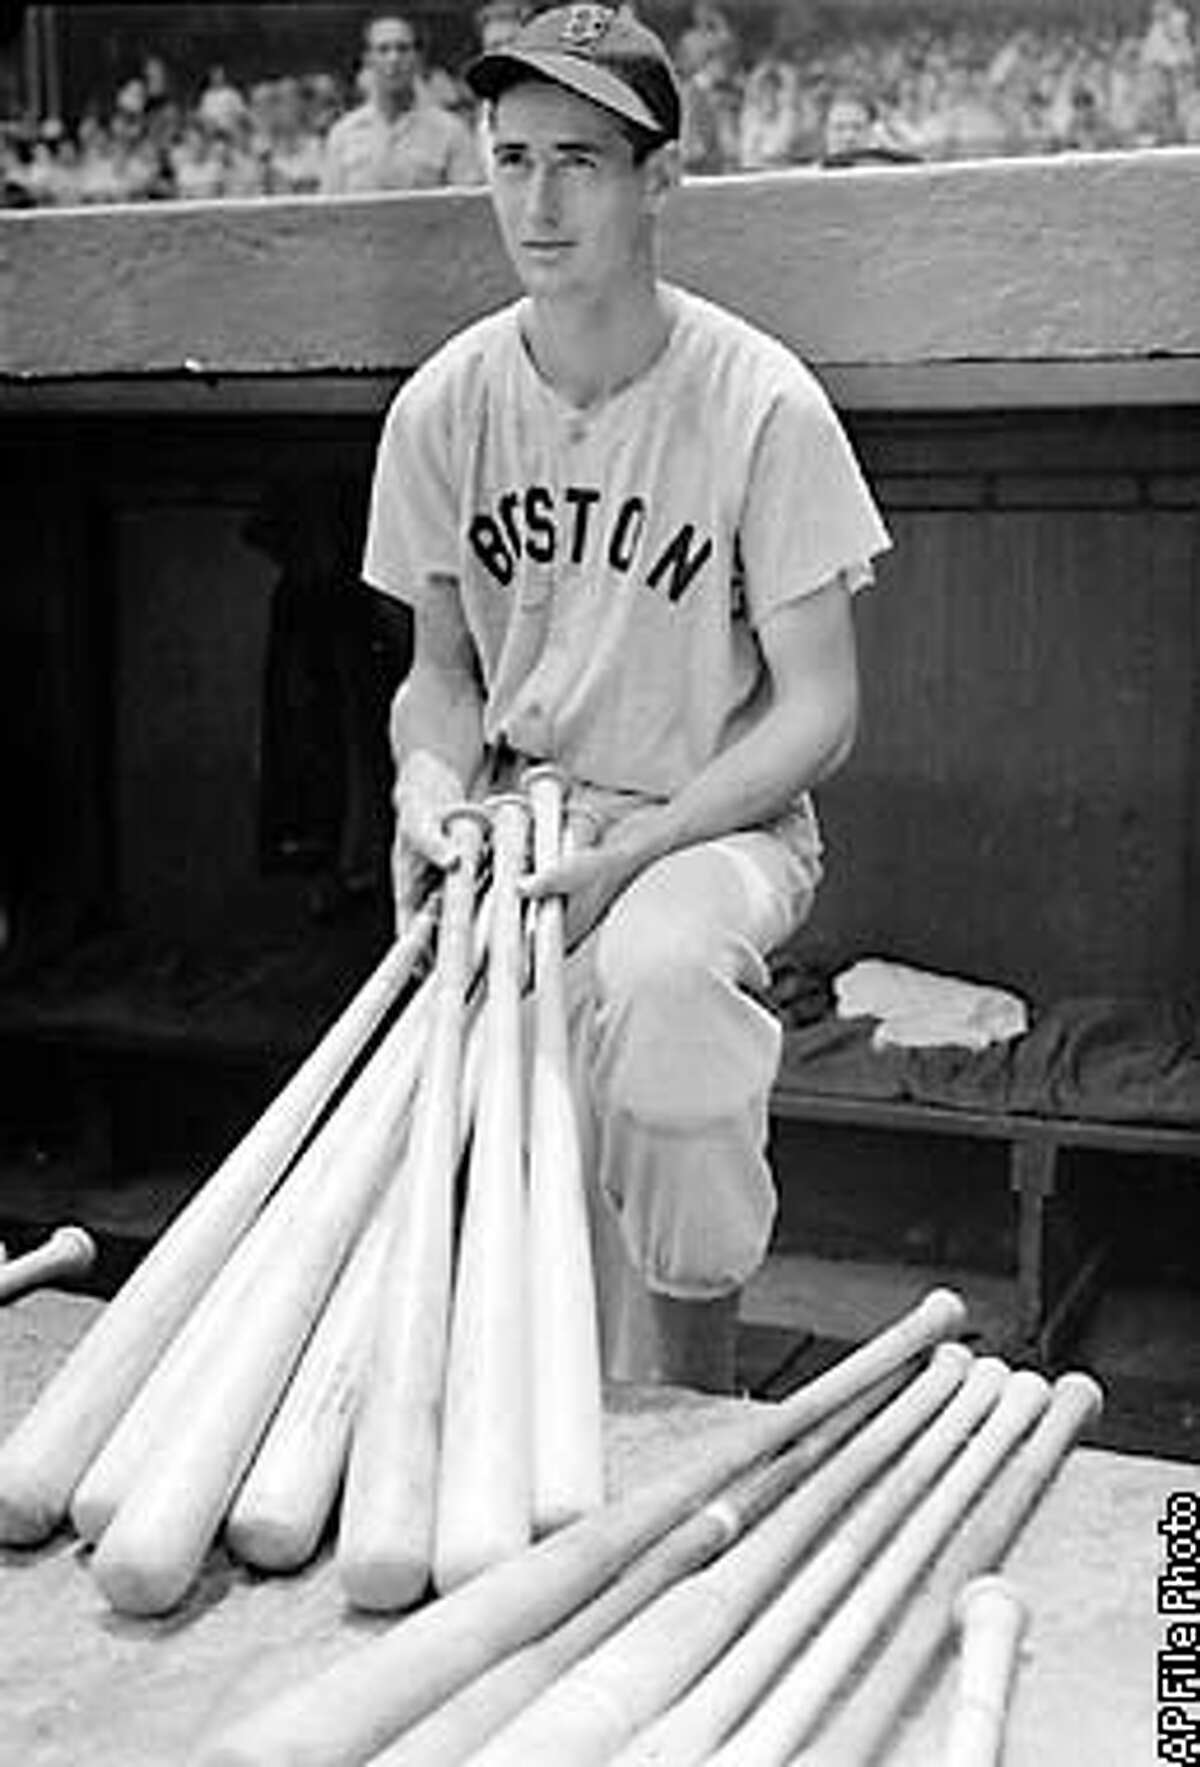 **FILE**Boston Red Sox outfielder Ted Williams is shown at Yankee Stadium in the dugout selecting bats before a game in this July 1, 1941 file photo. Williams, the Boston Red Sox revered and sometimes reviled ``Splendid Splinter'' and baseball's last .400 hitter, died Friday, July 6, 2002 in Crystal River, Florida. He was 83. (AP Photo, File)